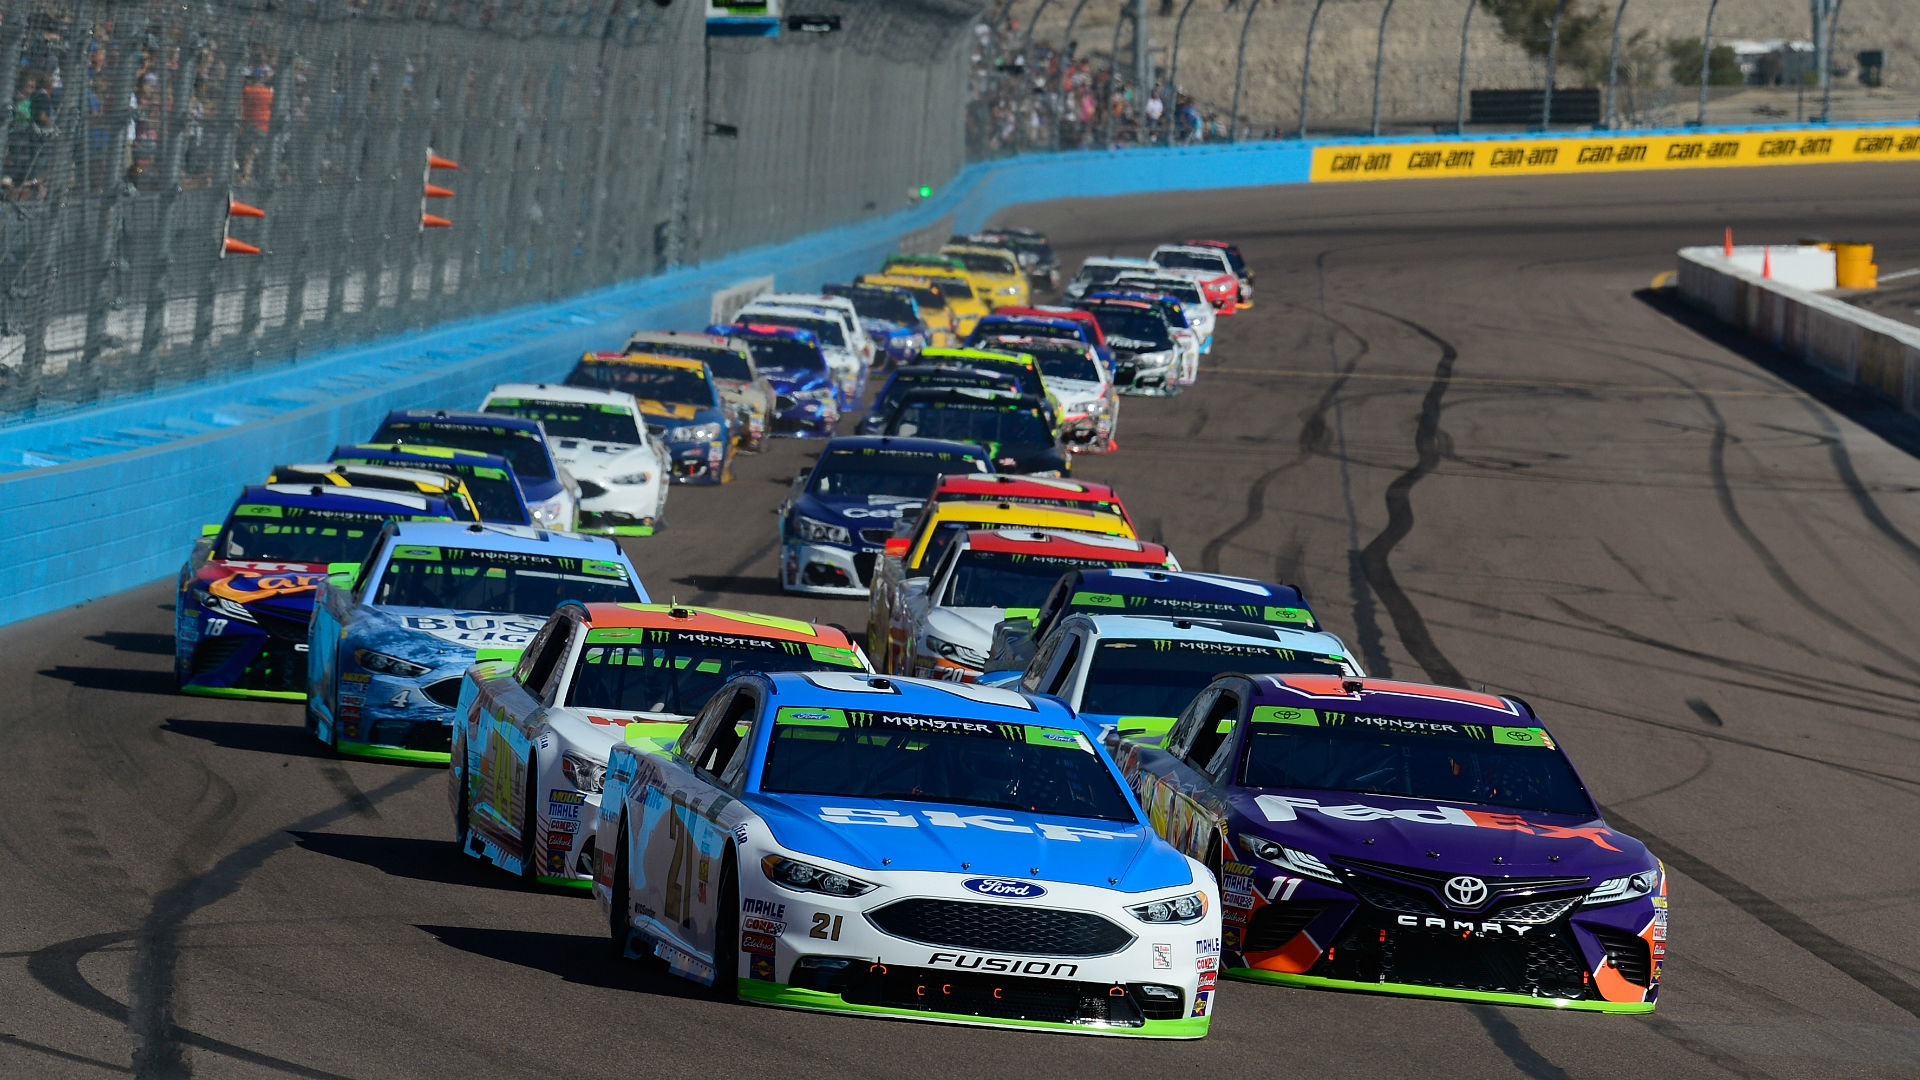 Calendrier Nascar.Nascar Schedule 2019 Date Time Tv Channels For Every Cup